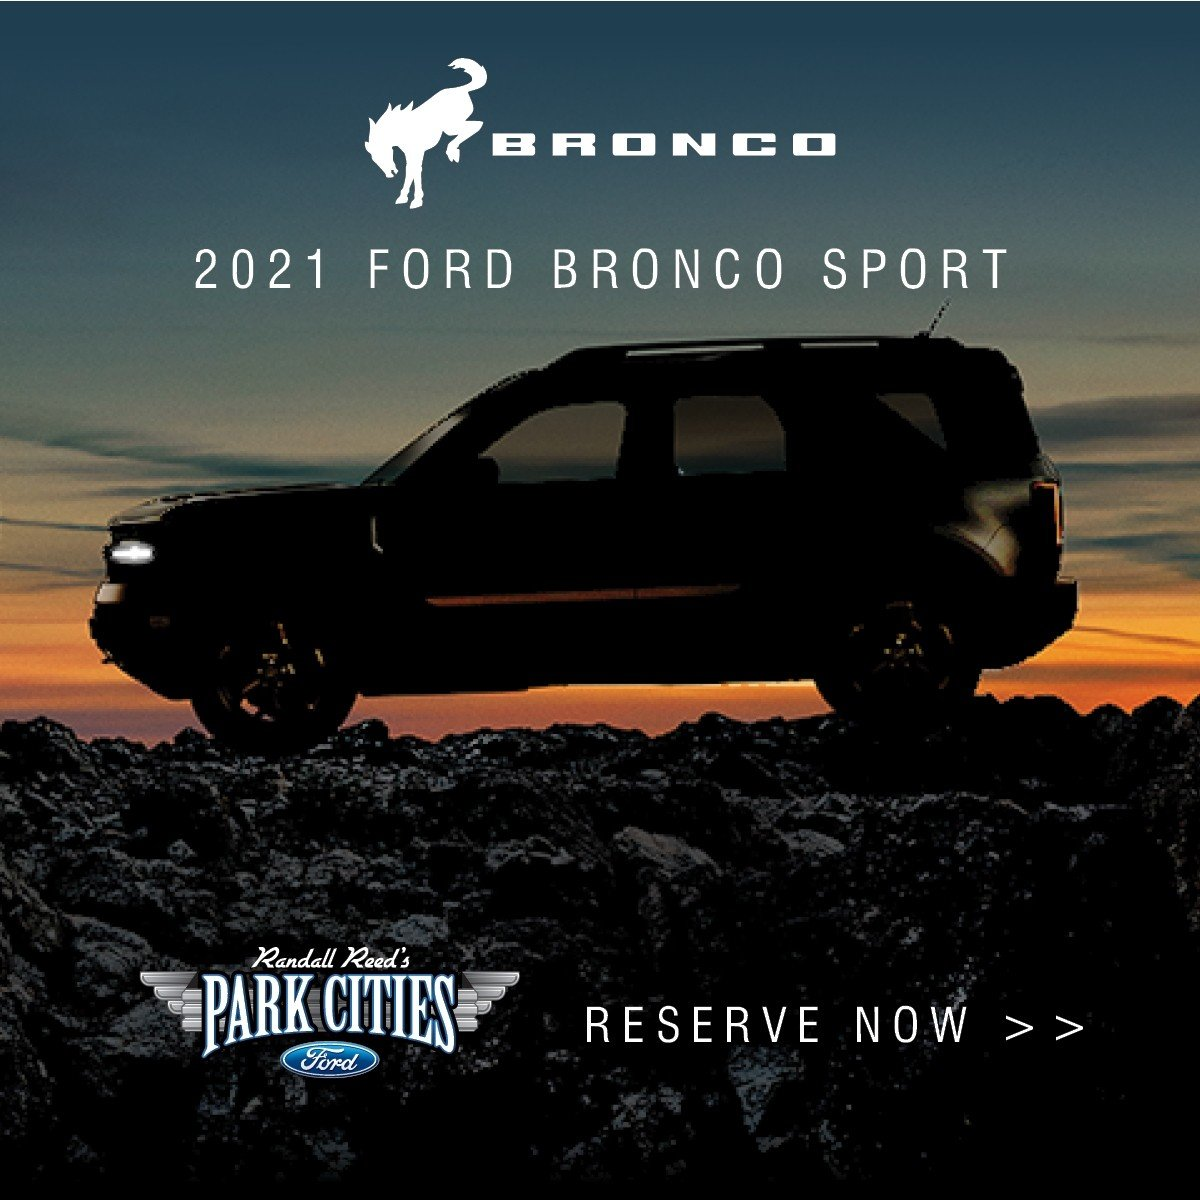 New 2021 Ford Bronco Sport - Reserve Now at Park Cities Ford of Dallas - Your Dallas Ford Dealer